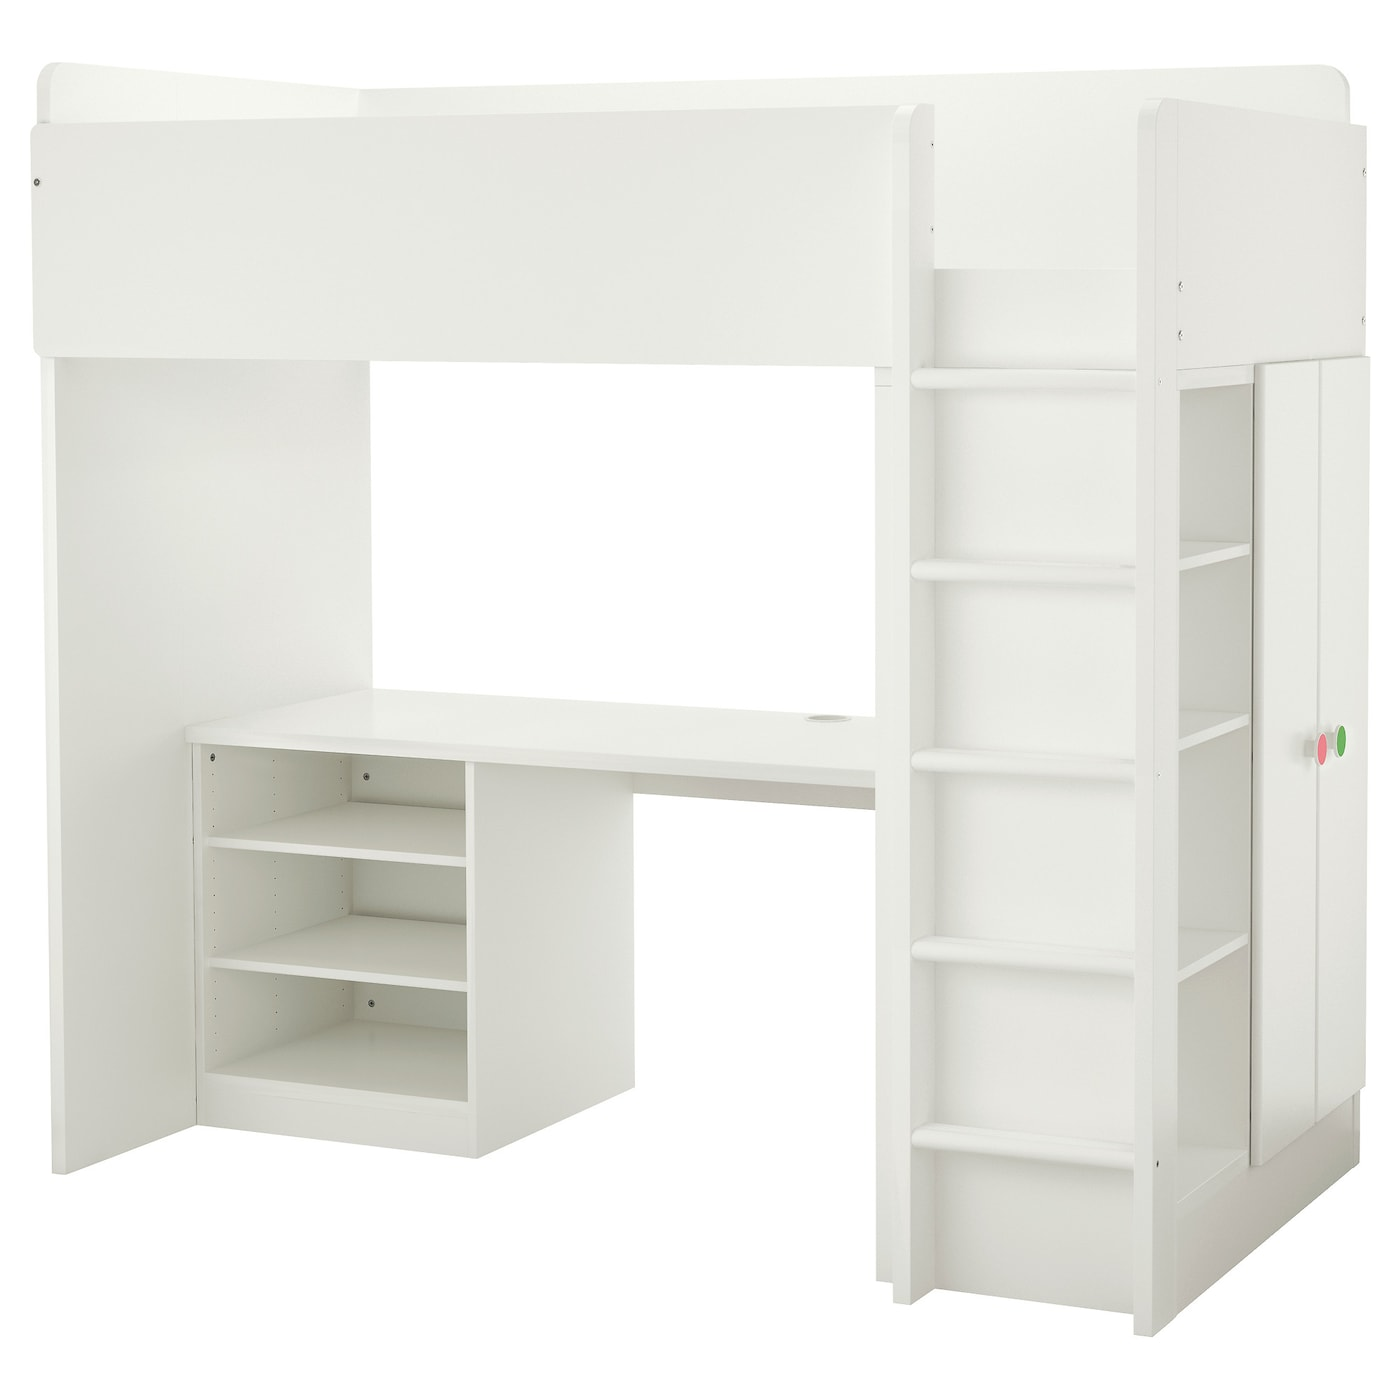 Stuva F Lja Loft Bed Combo W 2 Shelves 2 Doors White